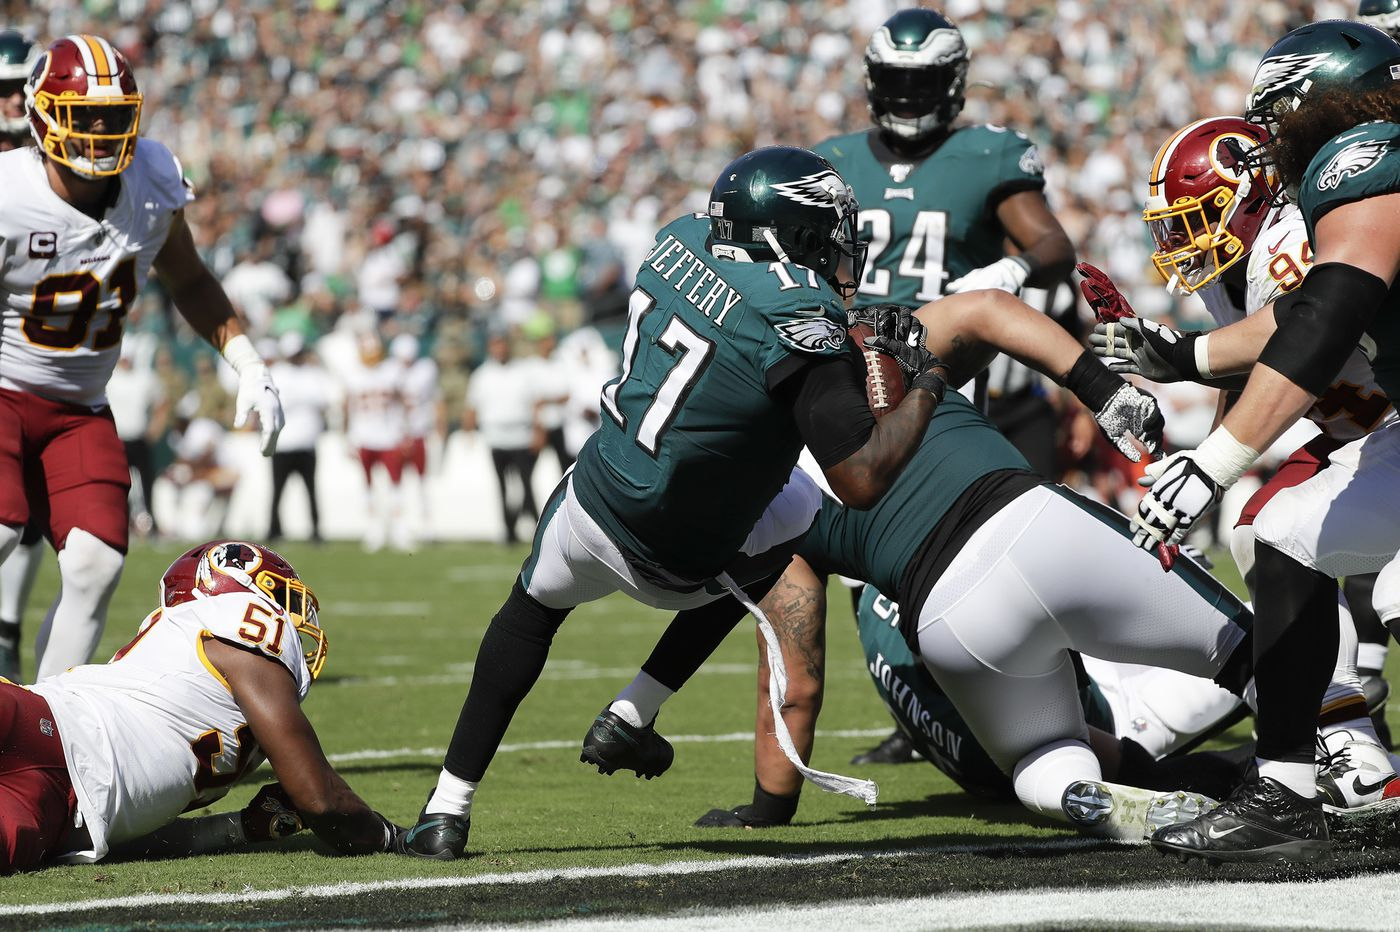 Five reasons the Eagles beat the Redskins | Paul Domowitch